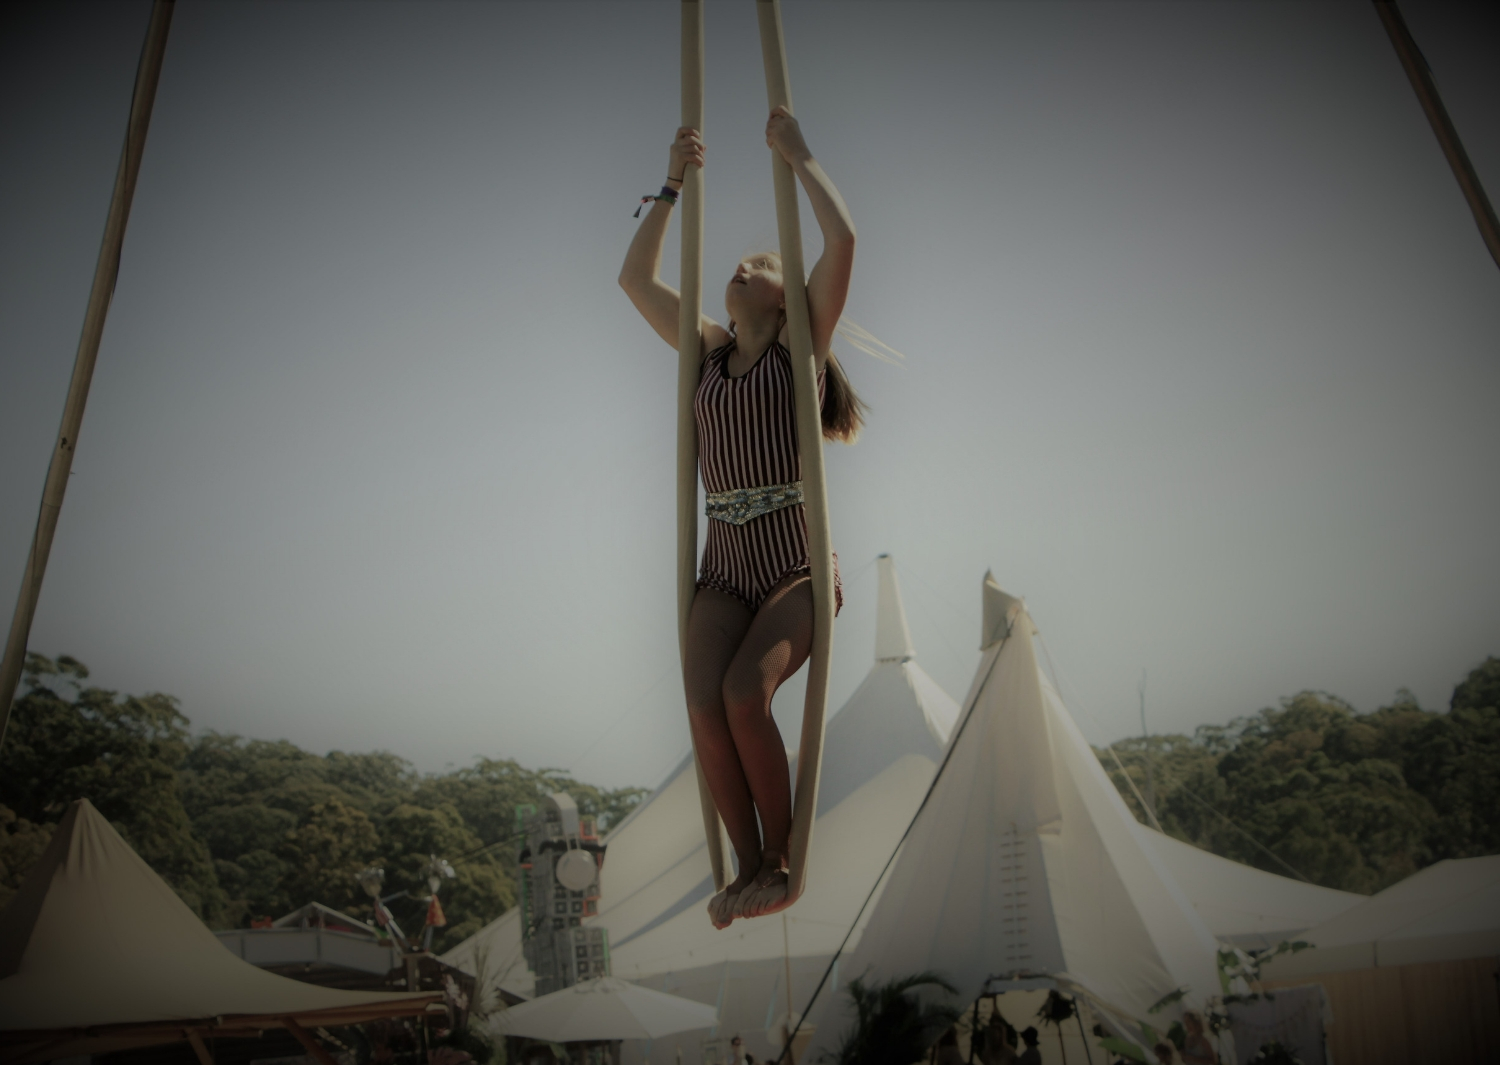 circus-arts-performances-shows-festivals-roving-1